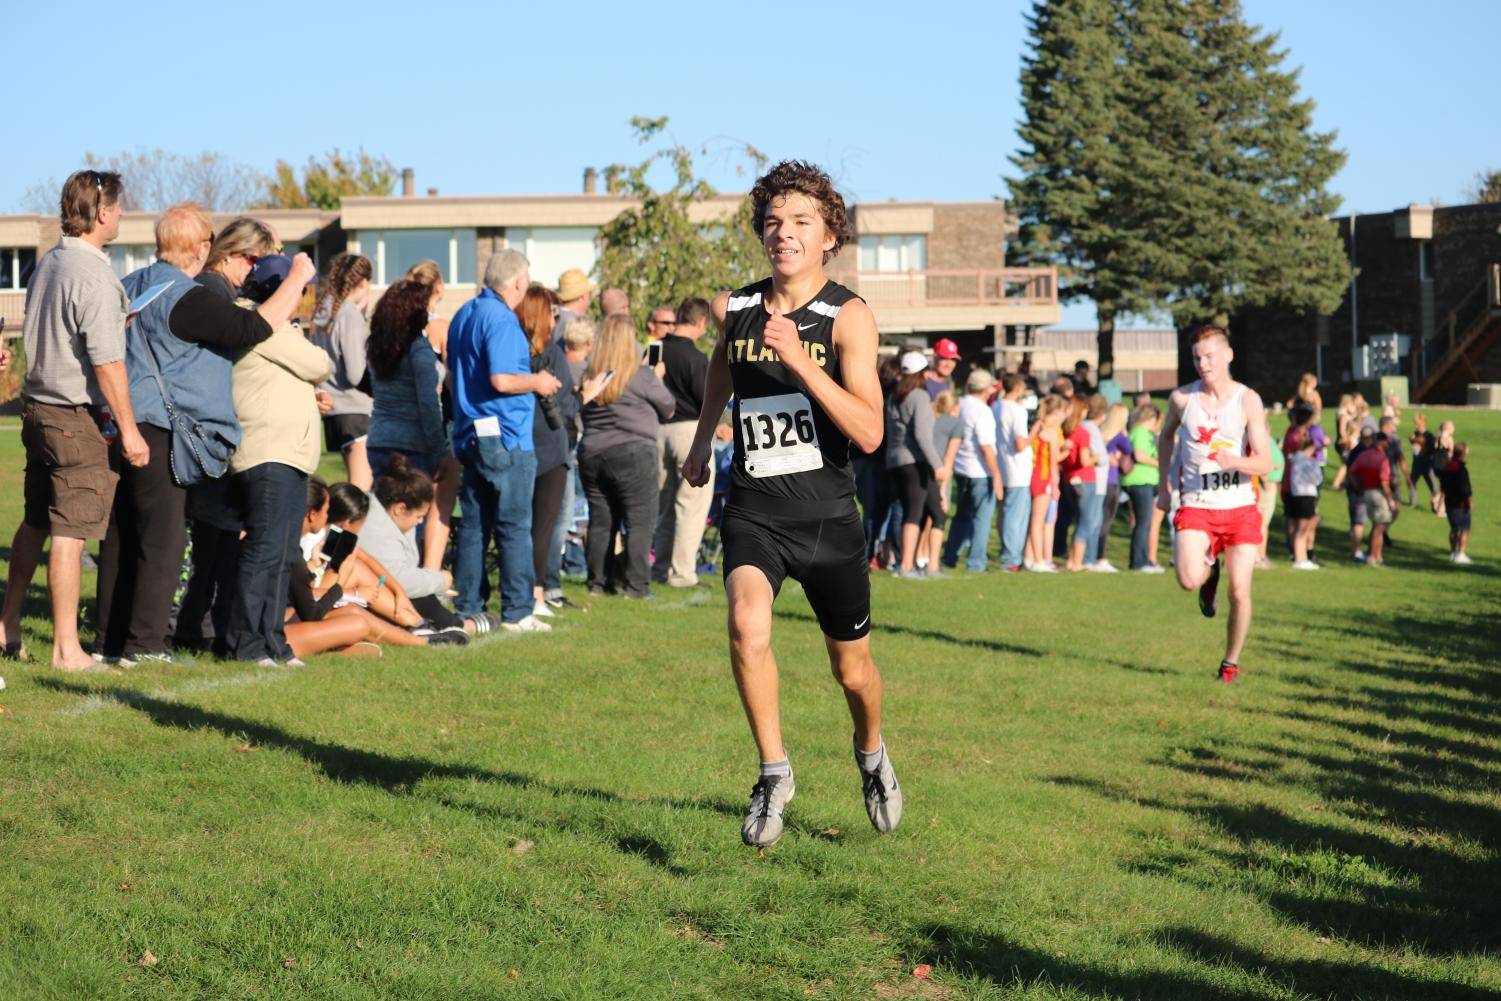 Junior Jalen Petersen sprints to the finish at the end of his race.